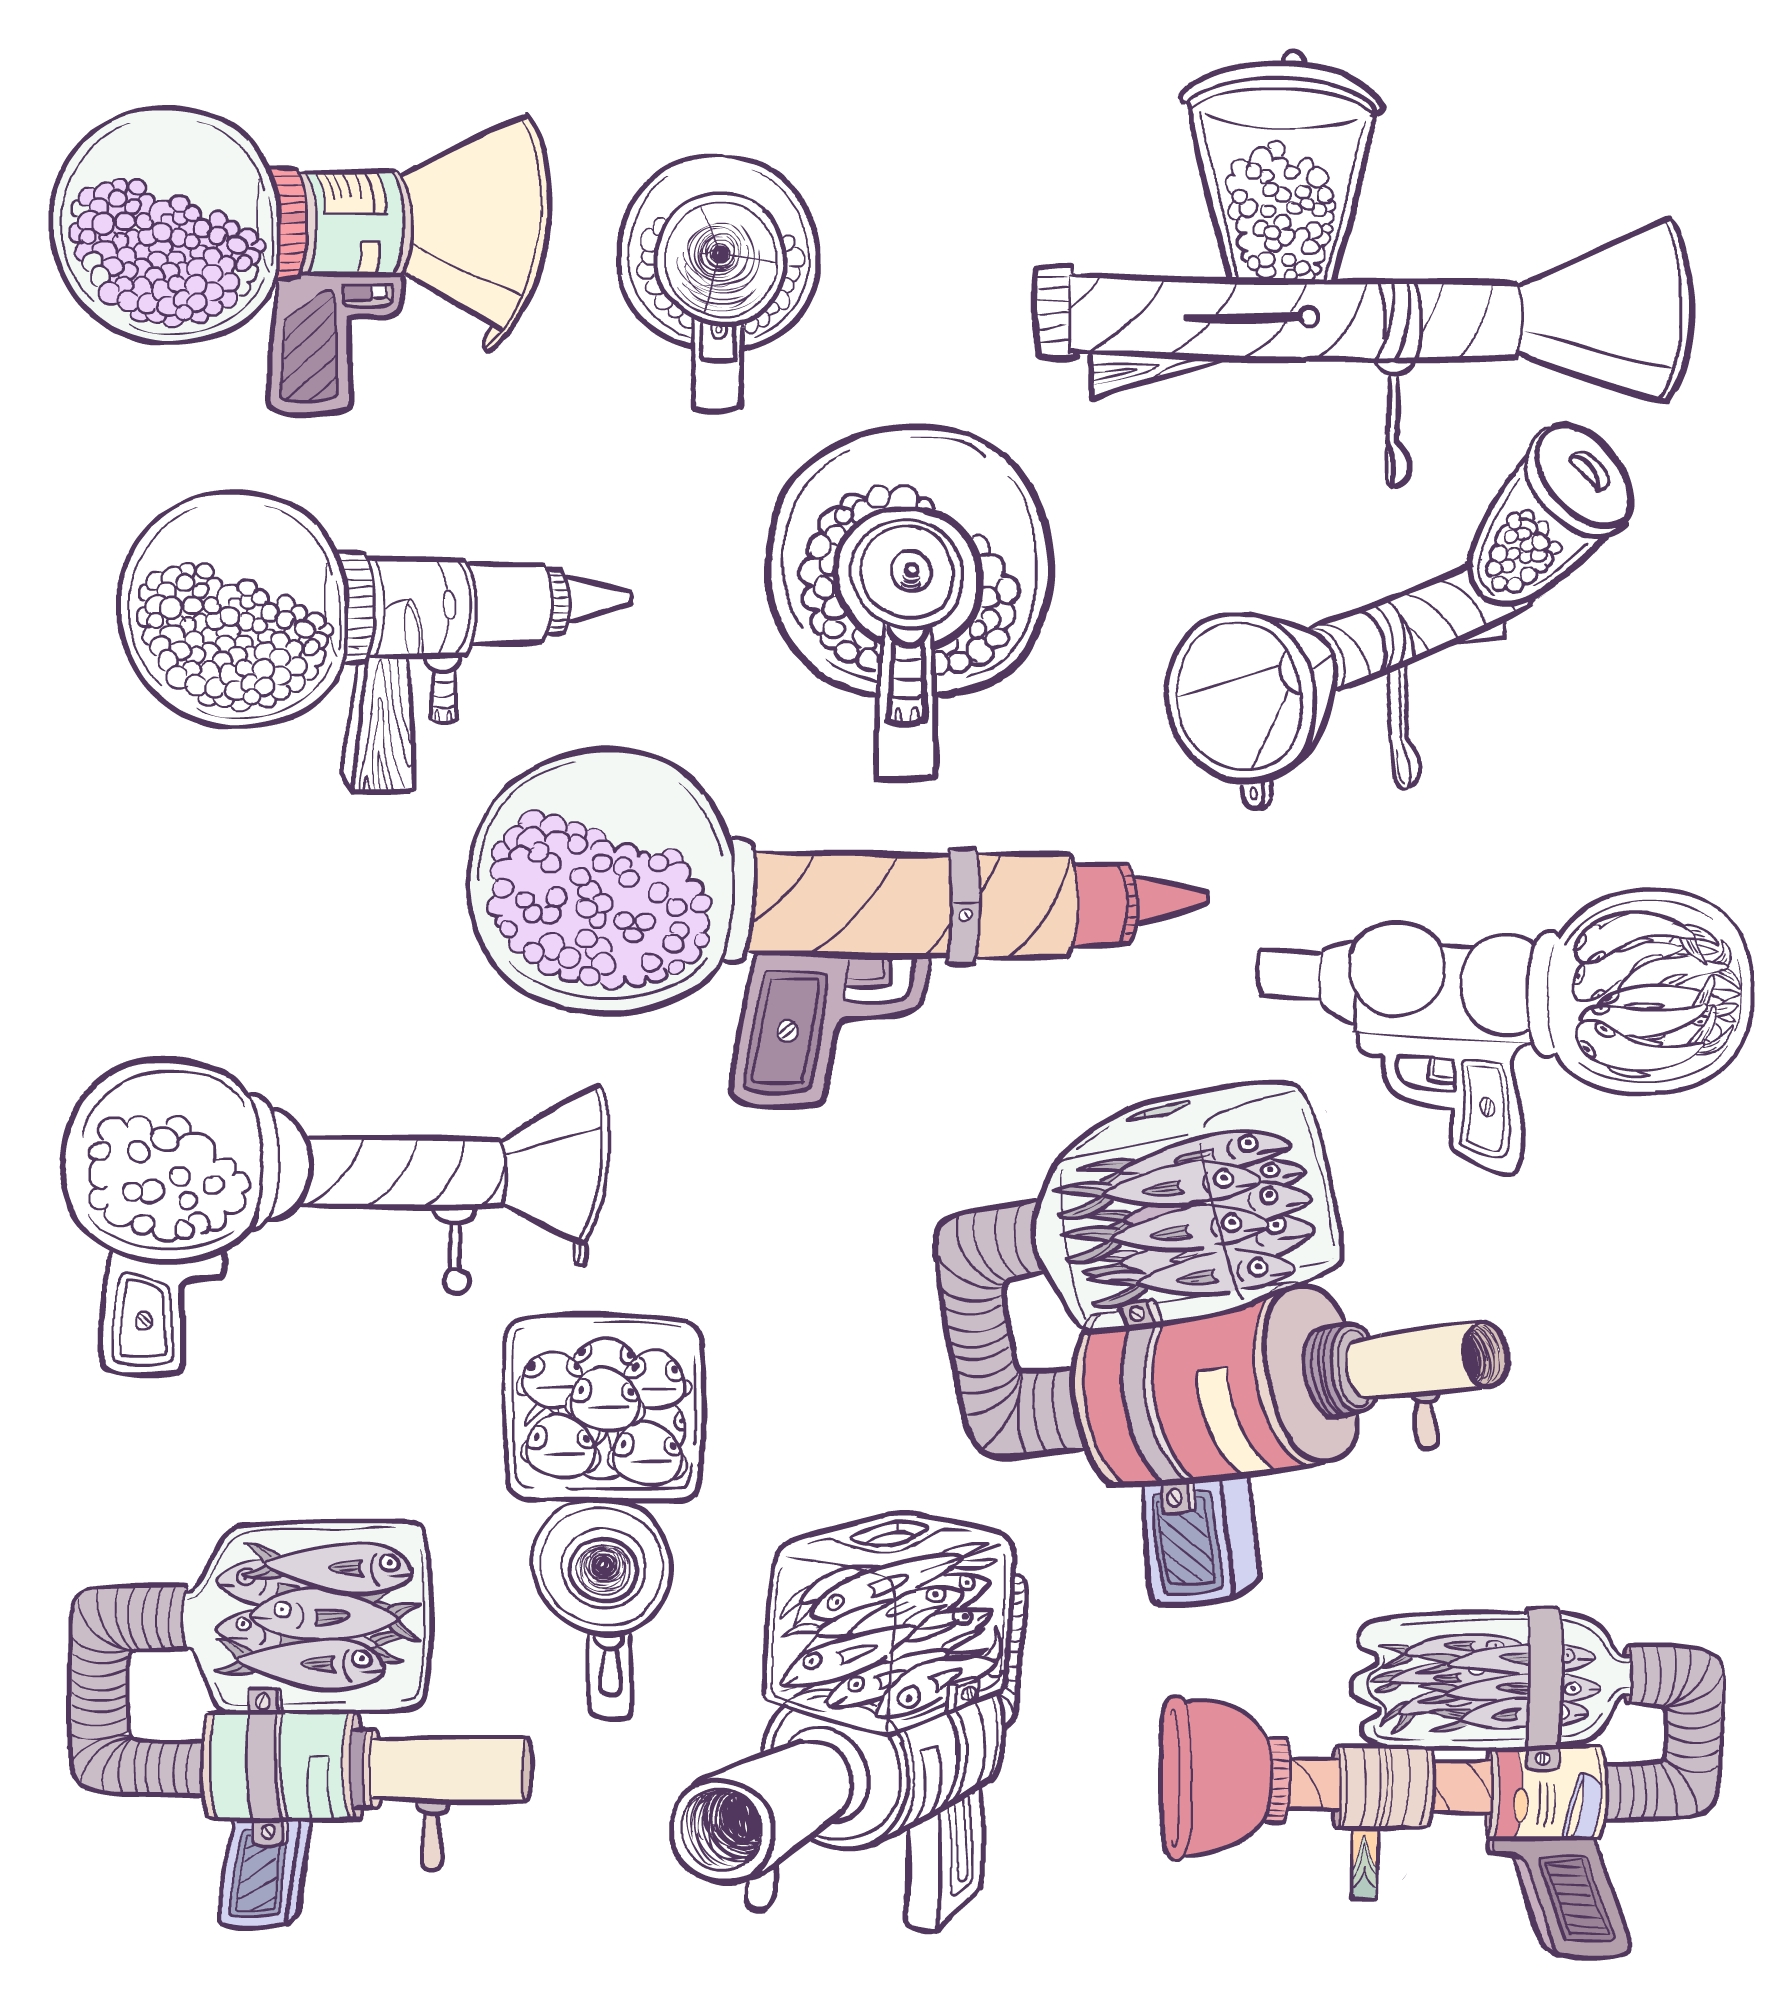 Weapon design_v03_1.jpg